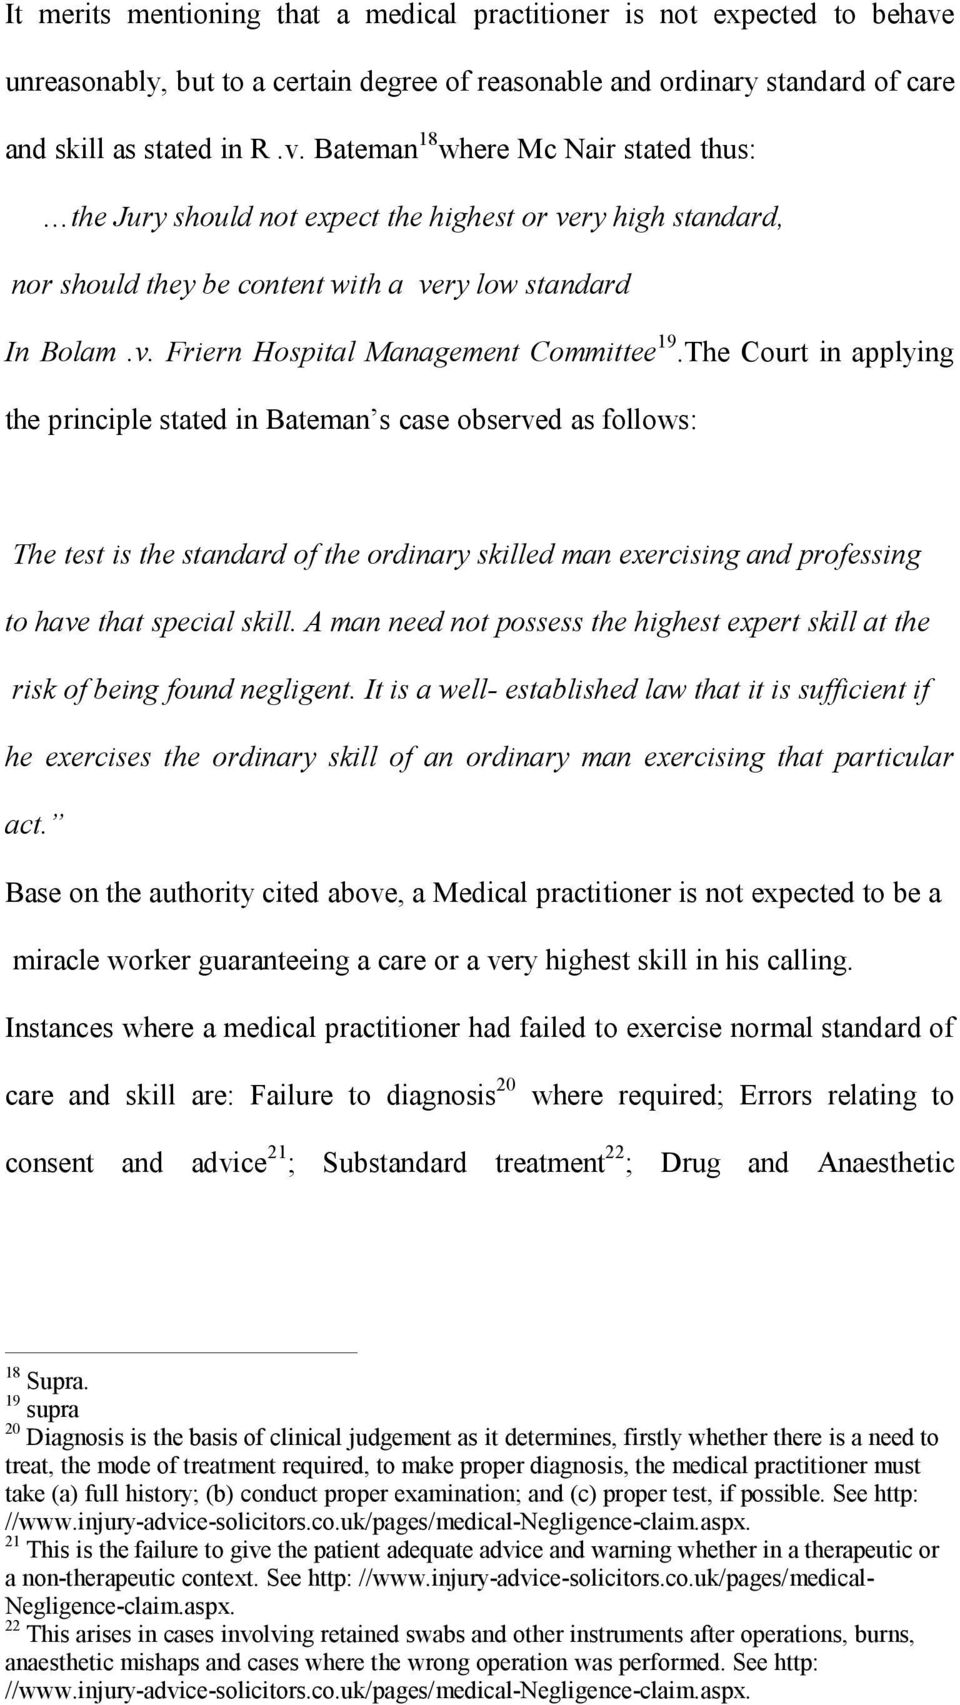 Bateman 18 where Mc Nair stated thus: the Jury should not expect the highest or very high standard, nor should they be content with a very low standard In Bolam.v. Friern Hospital Management Committee 19.